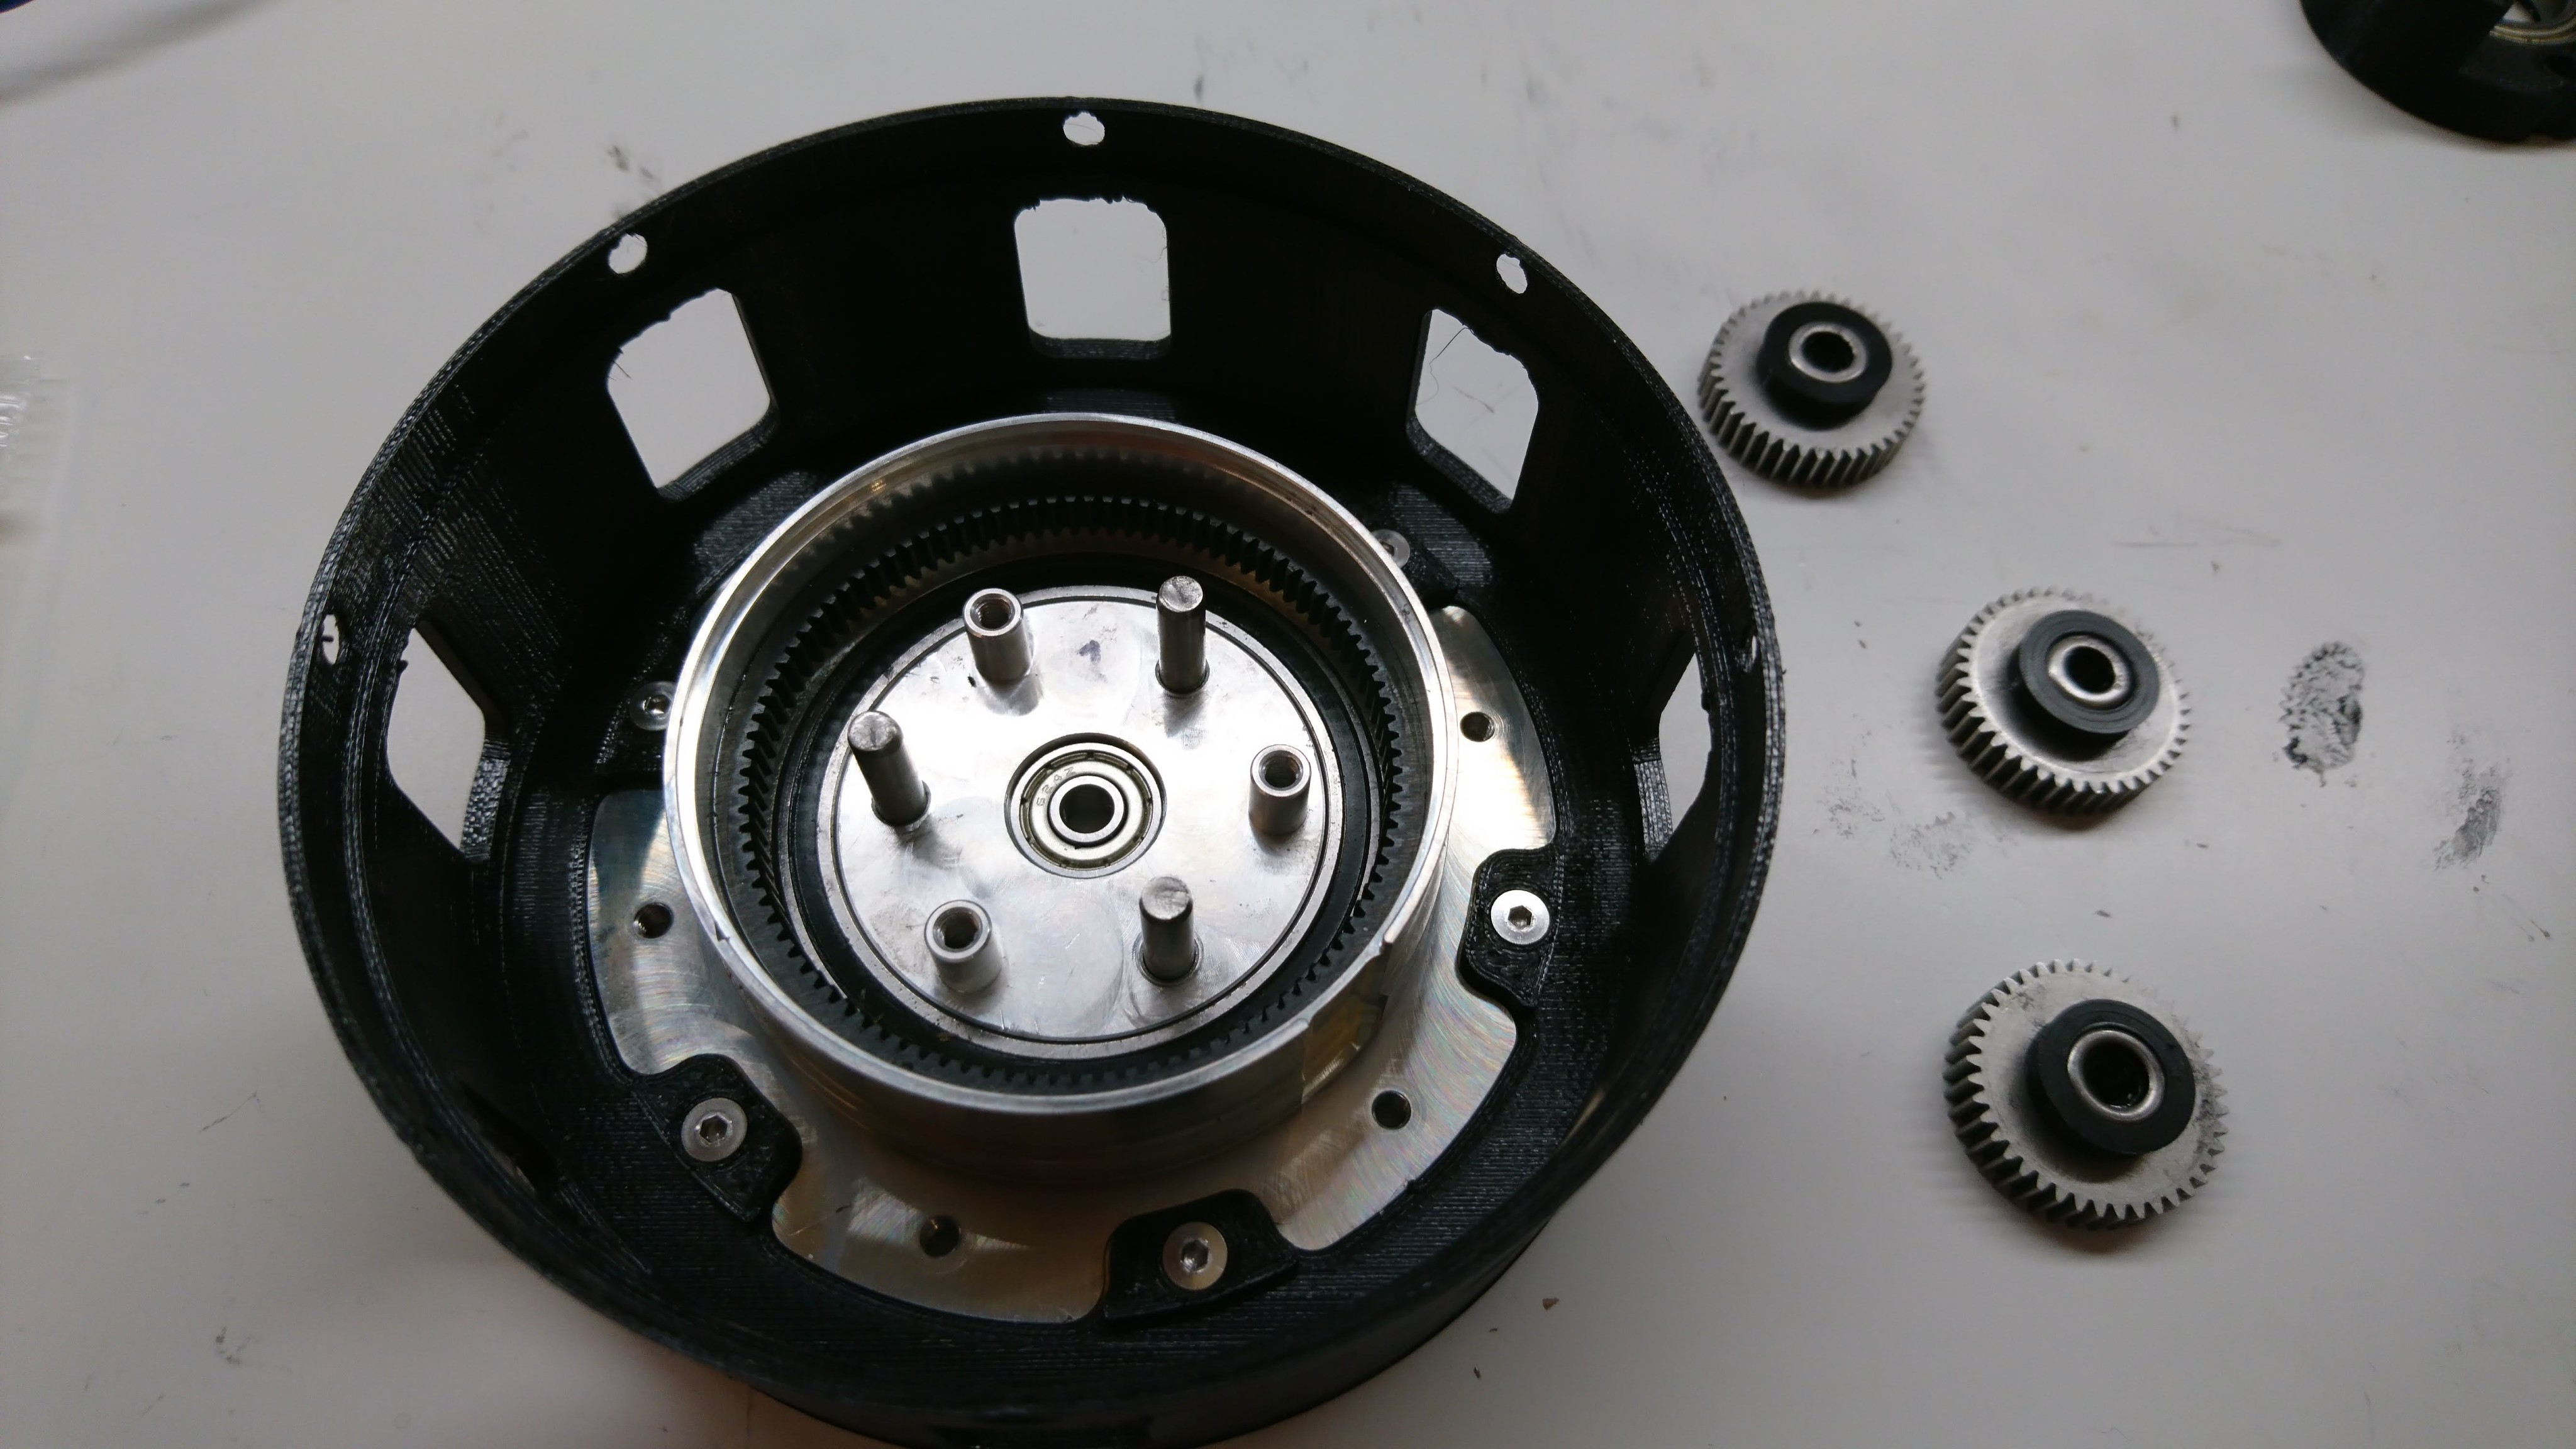 Planet output and planet gears partially assembled